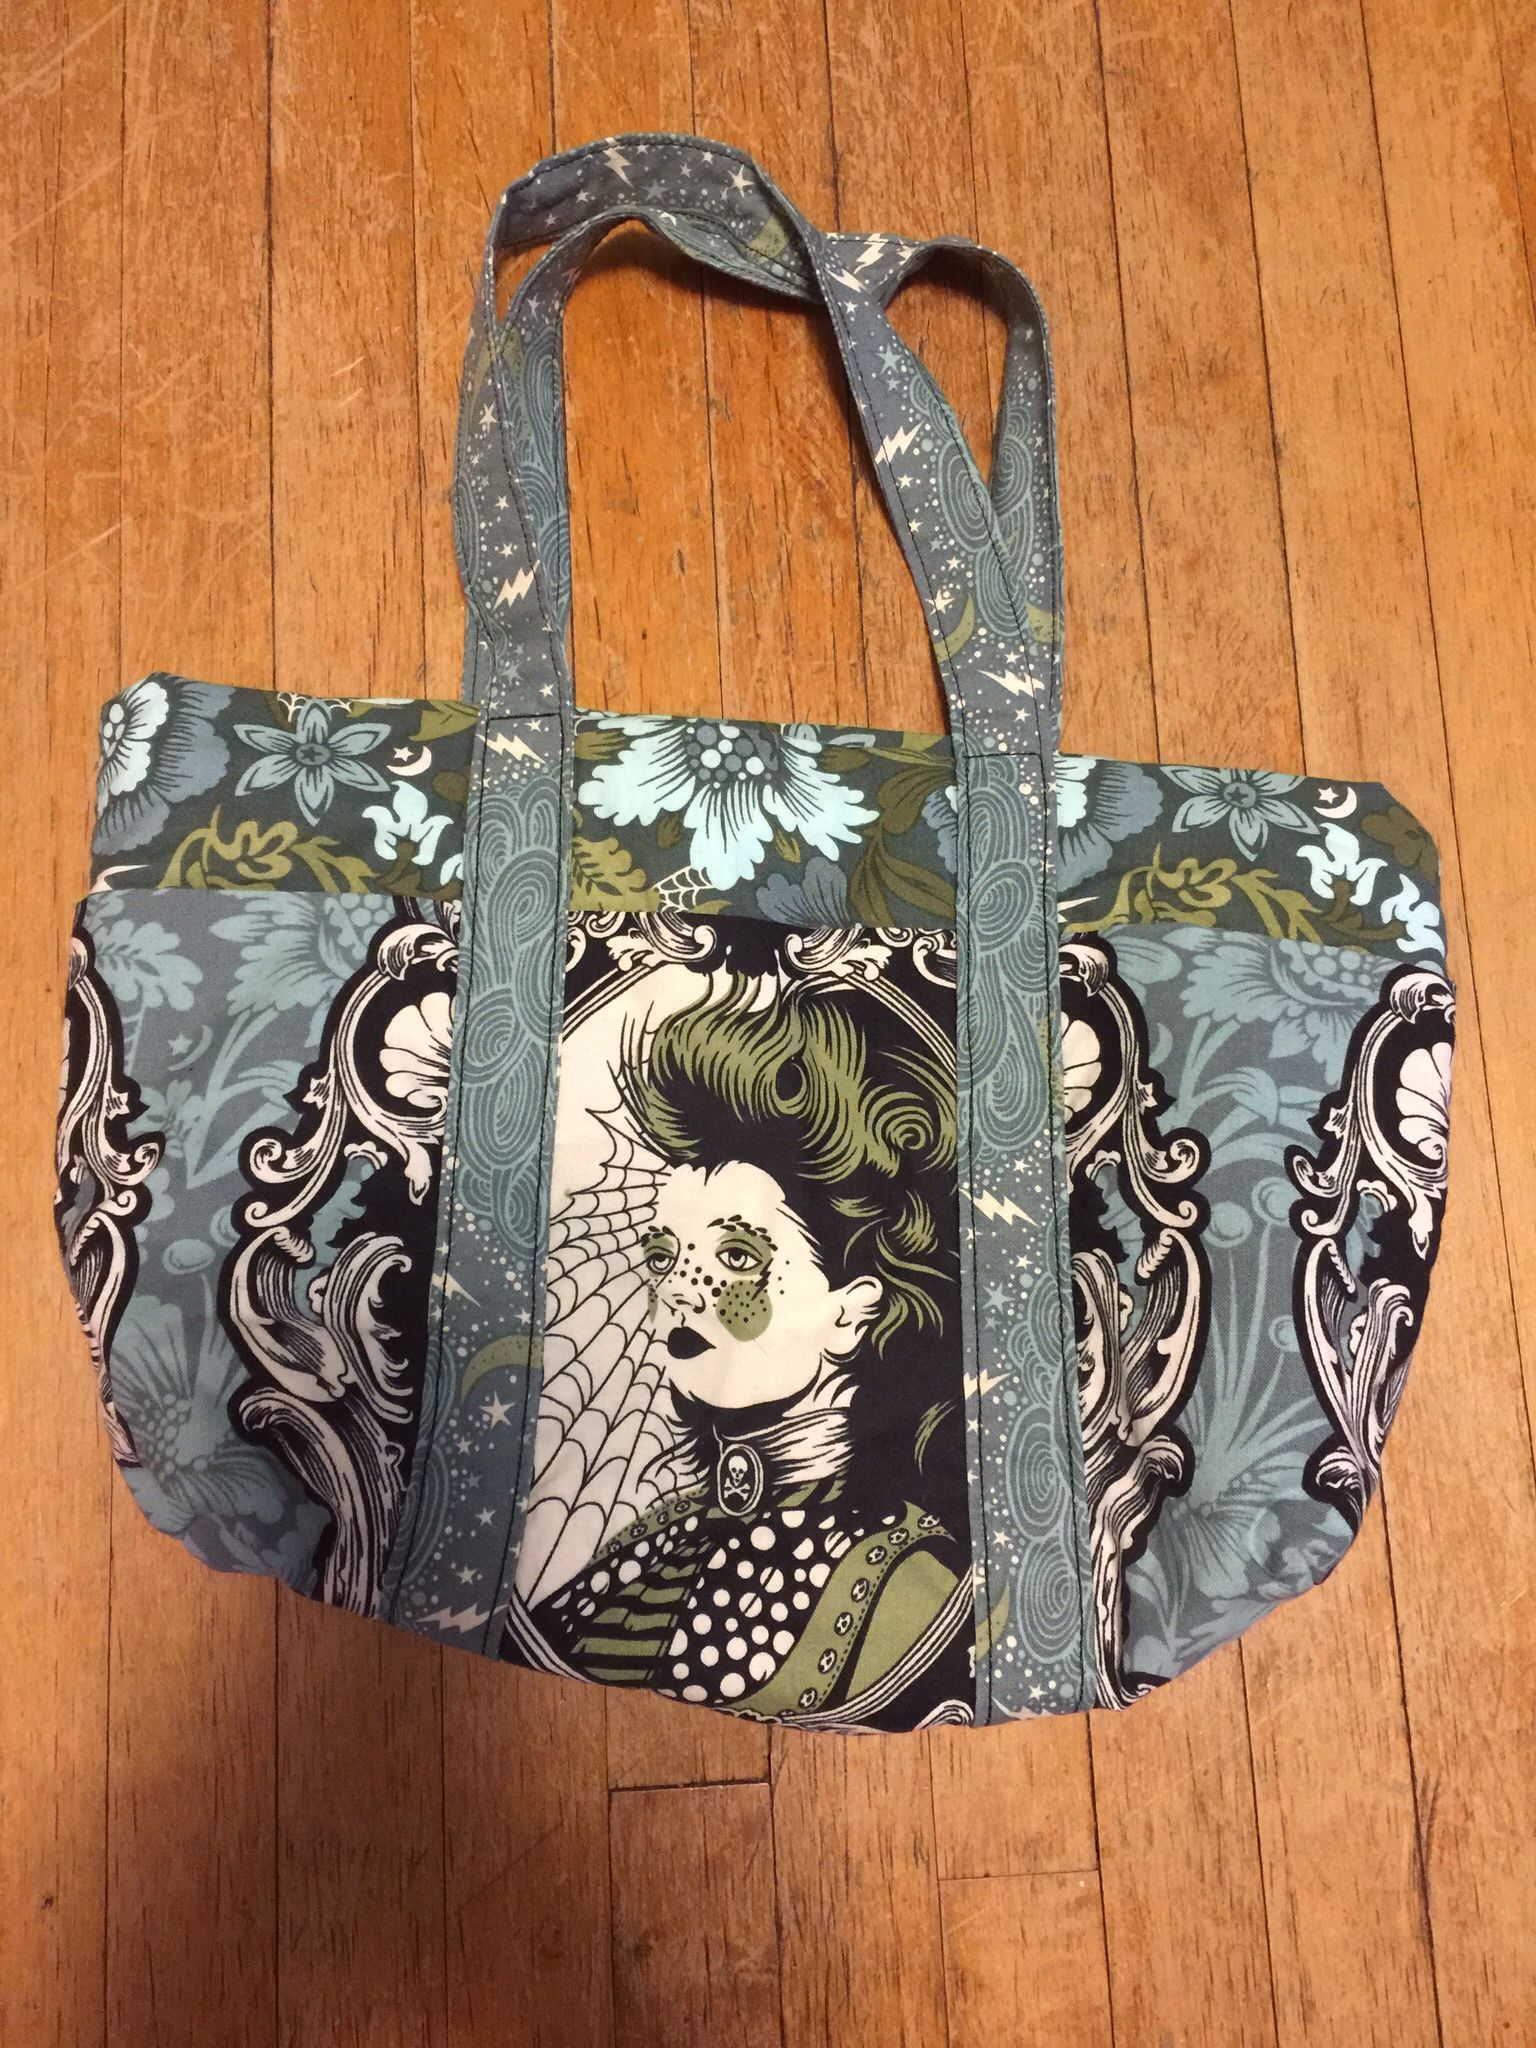 Tula Pink nightshade cameo. Bag pattern from Better Home & Garden.